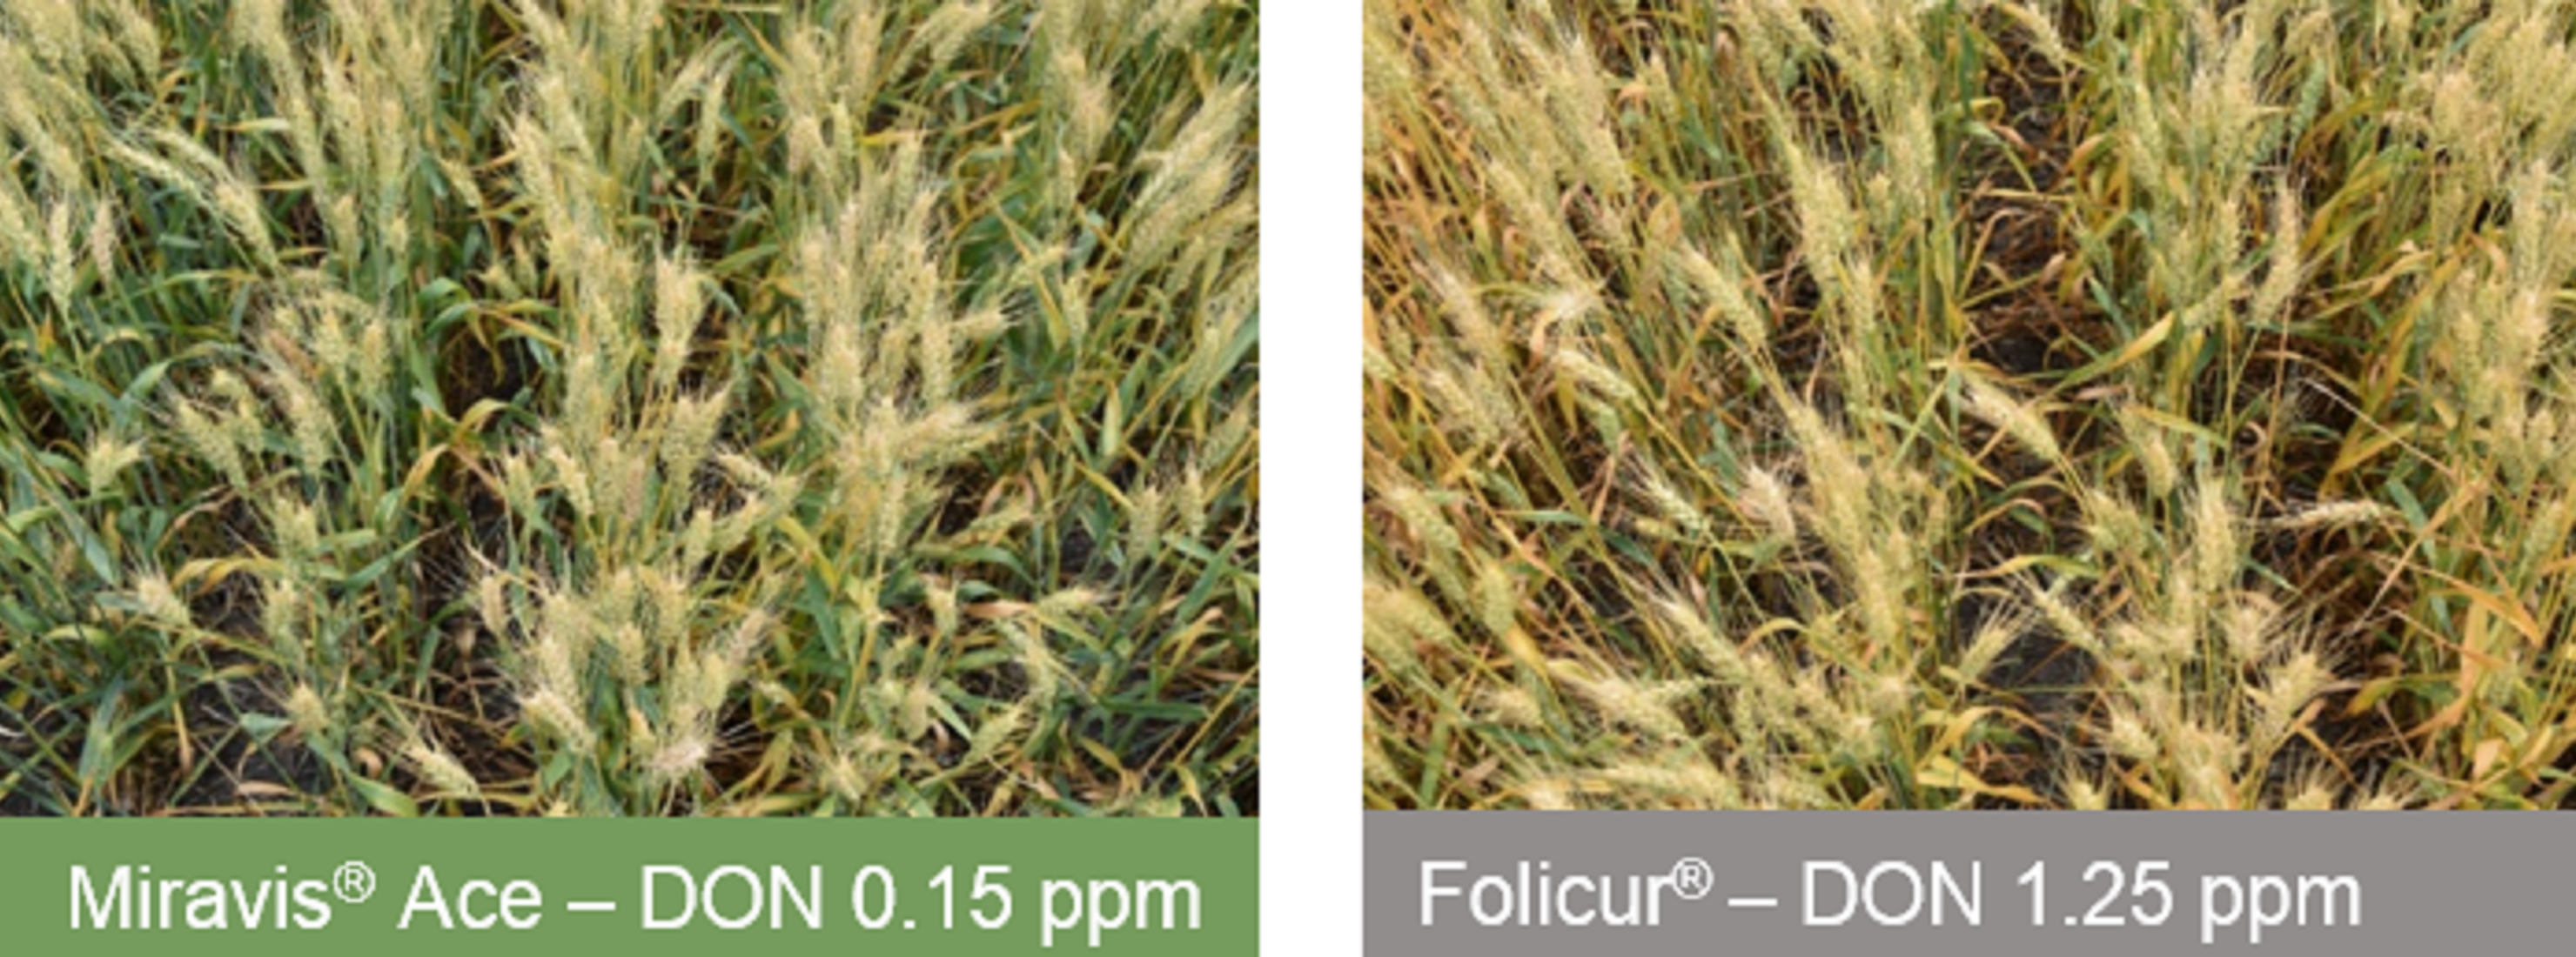 This agronomic image compares Miravis Ace and Folicur fungicide.